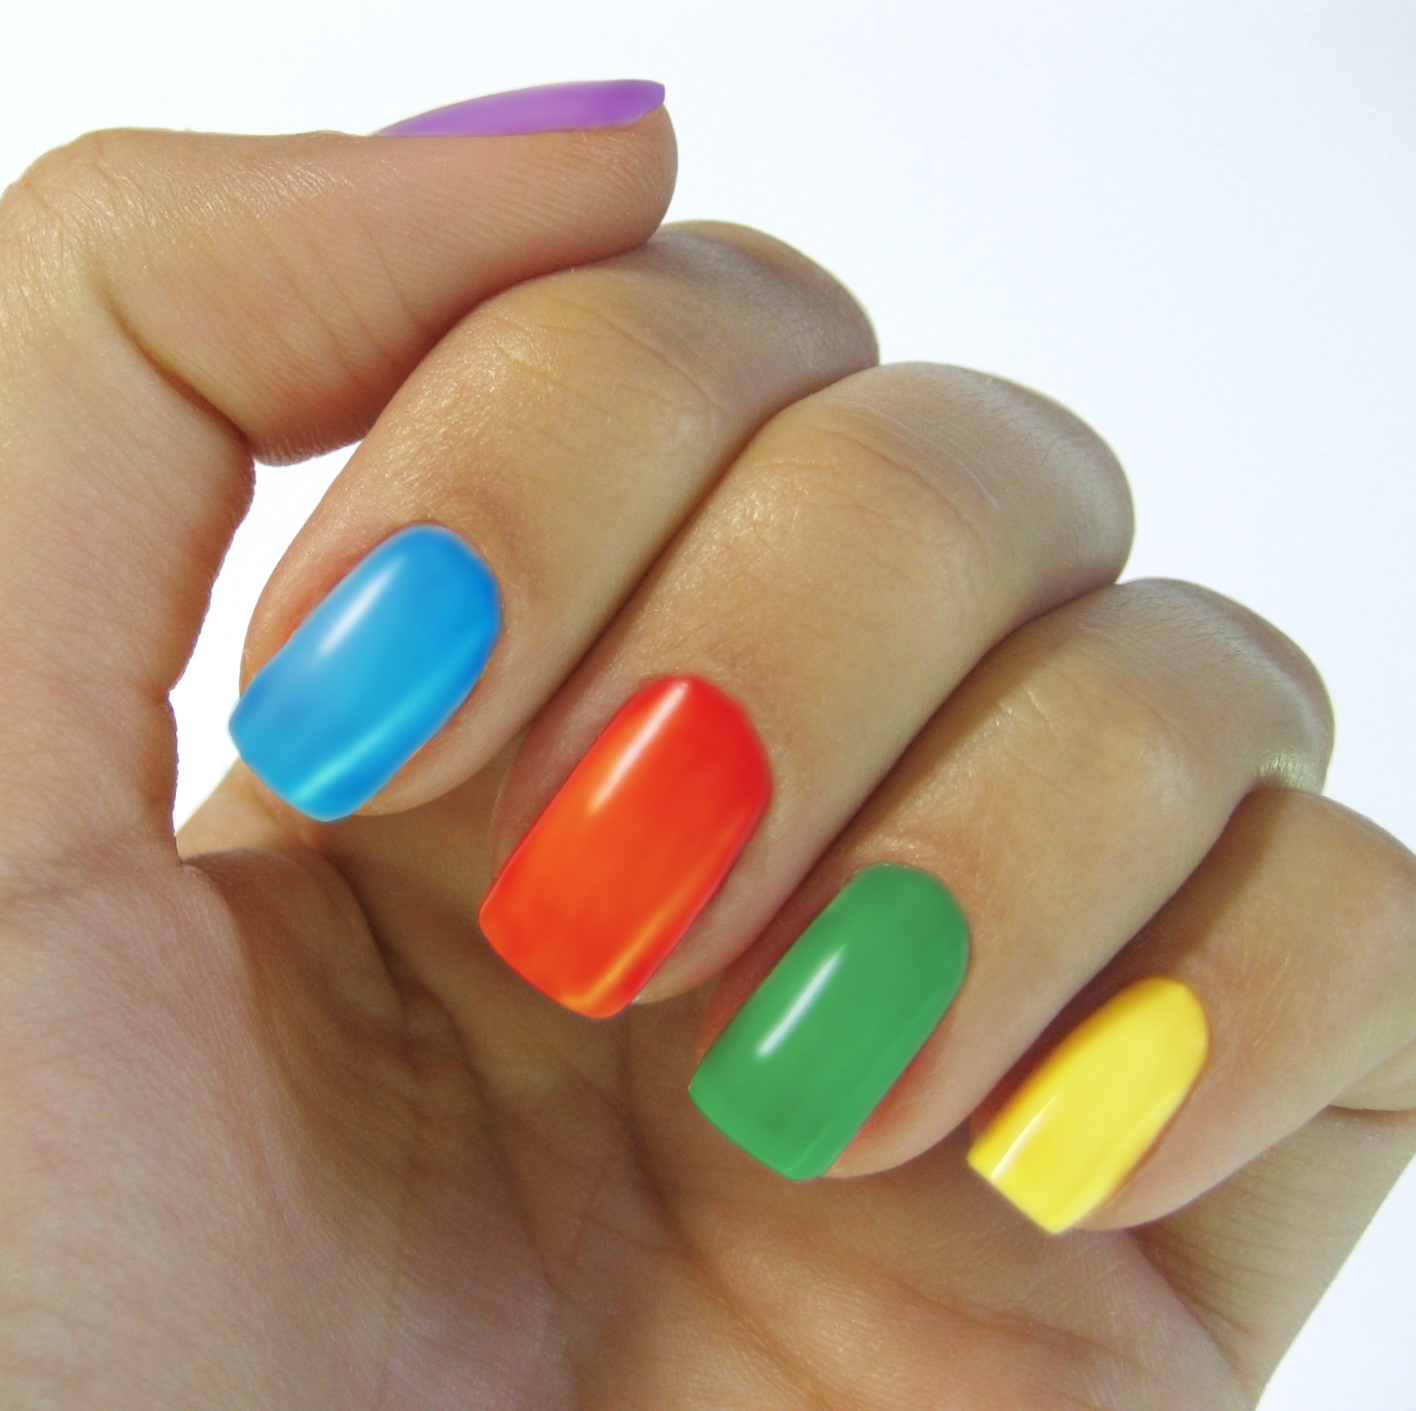 Of rainbow nails and unlocked doors